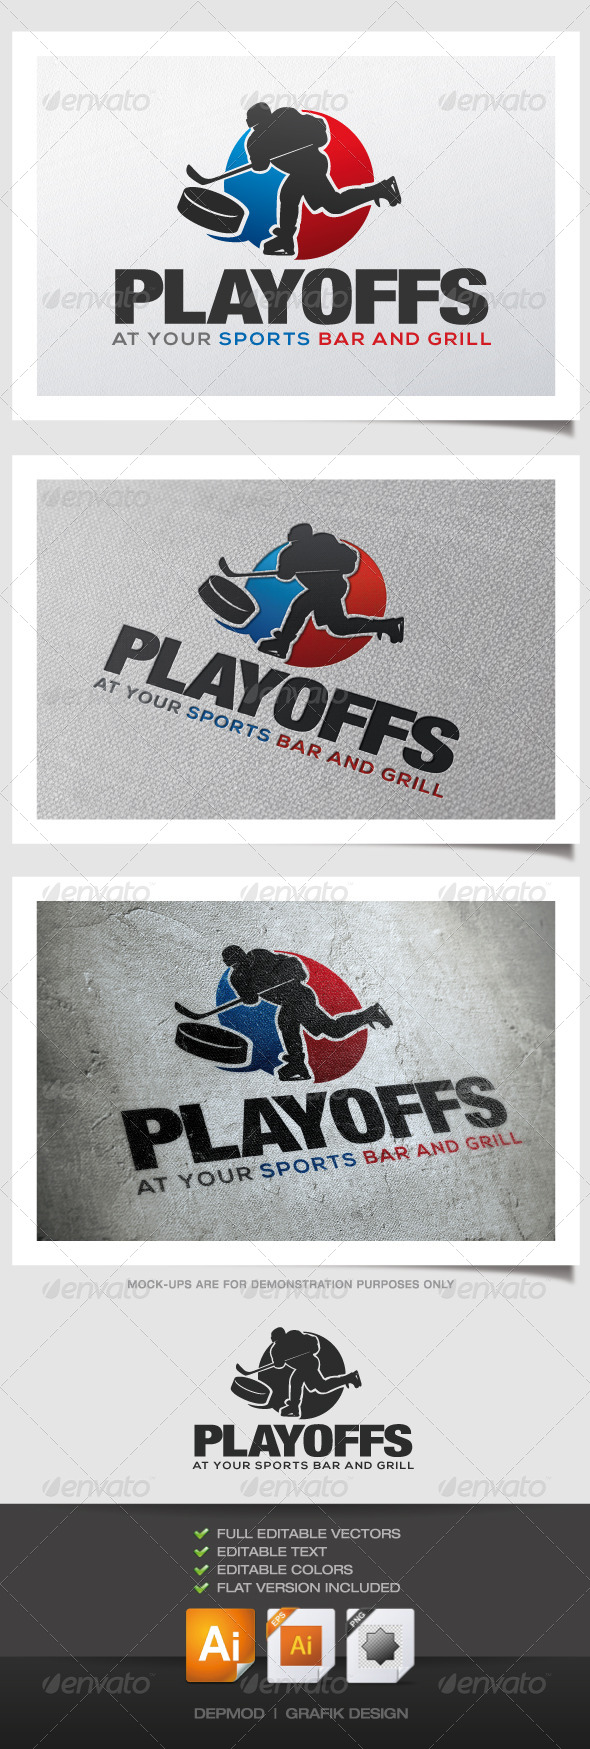 GraphicRiver Playoffs Logo 4490723